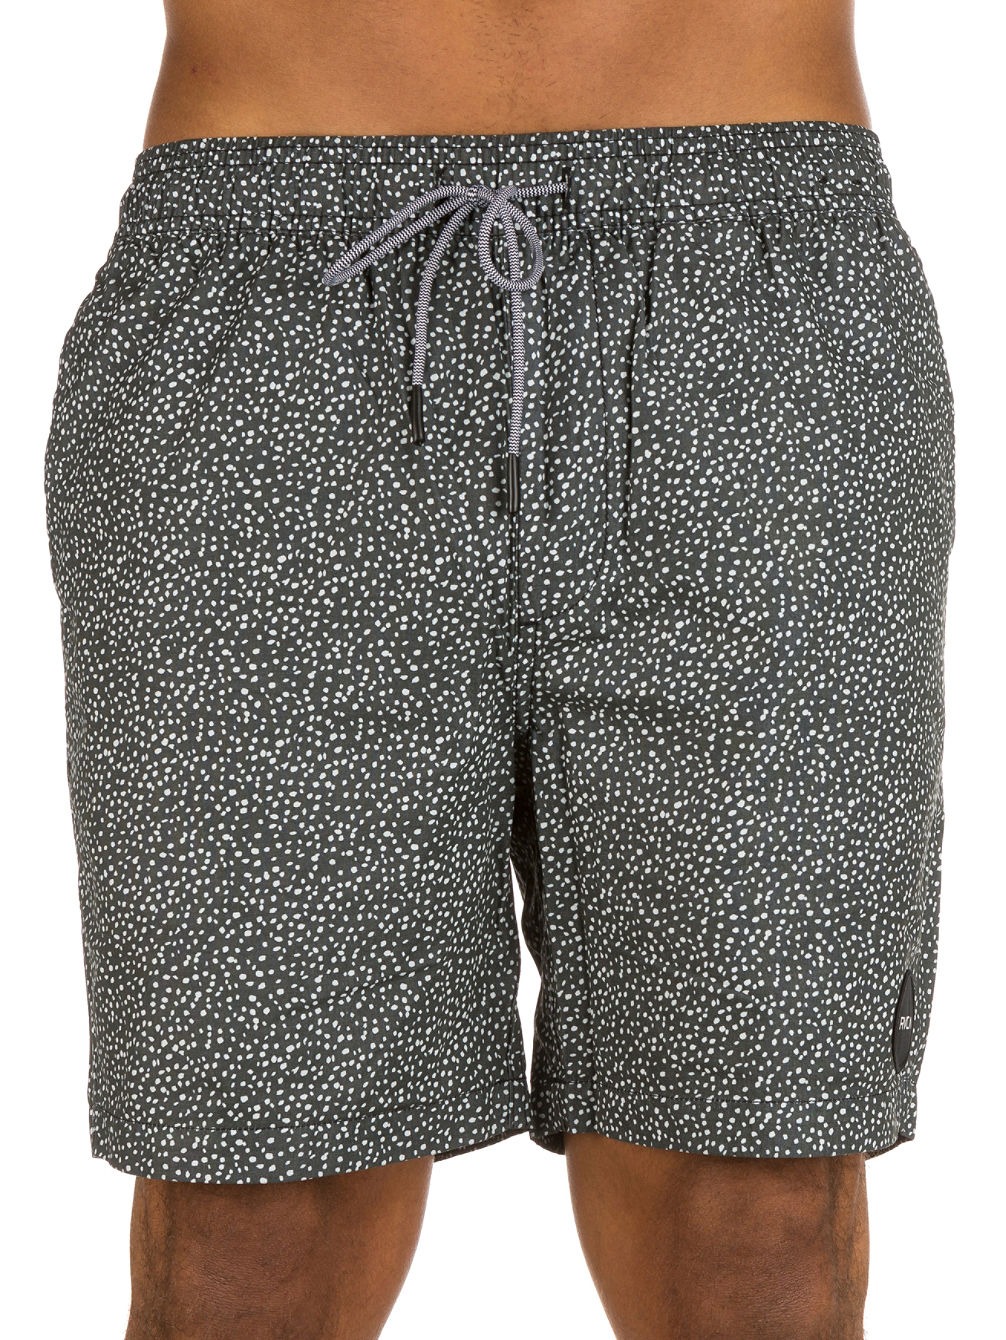 Speckled Elastic Shorts